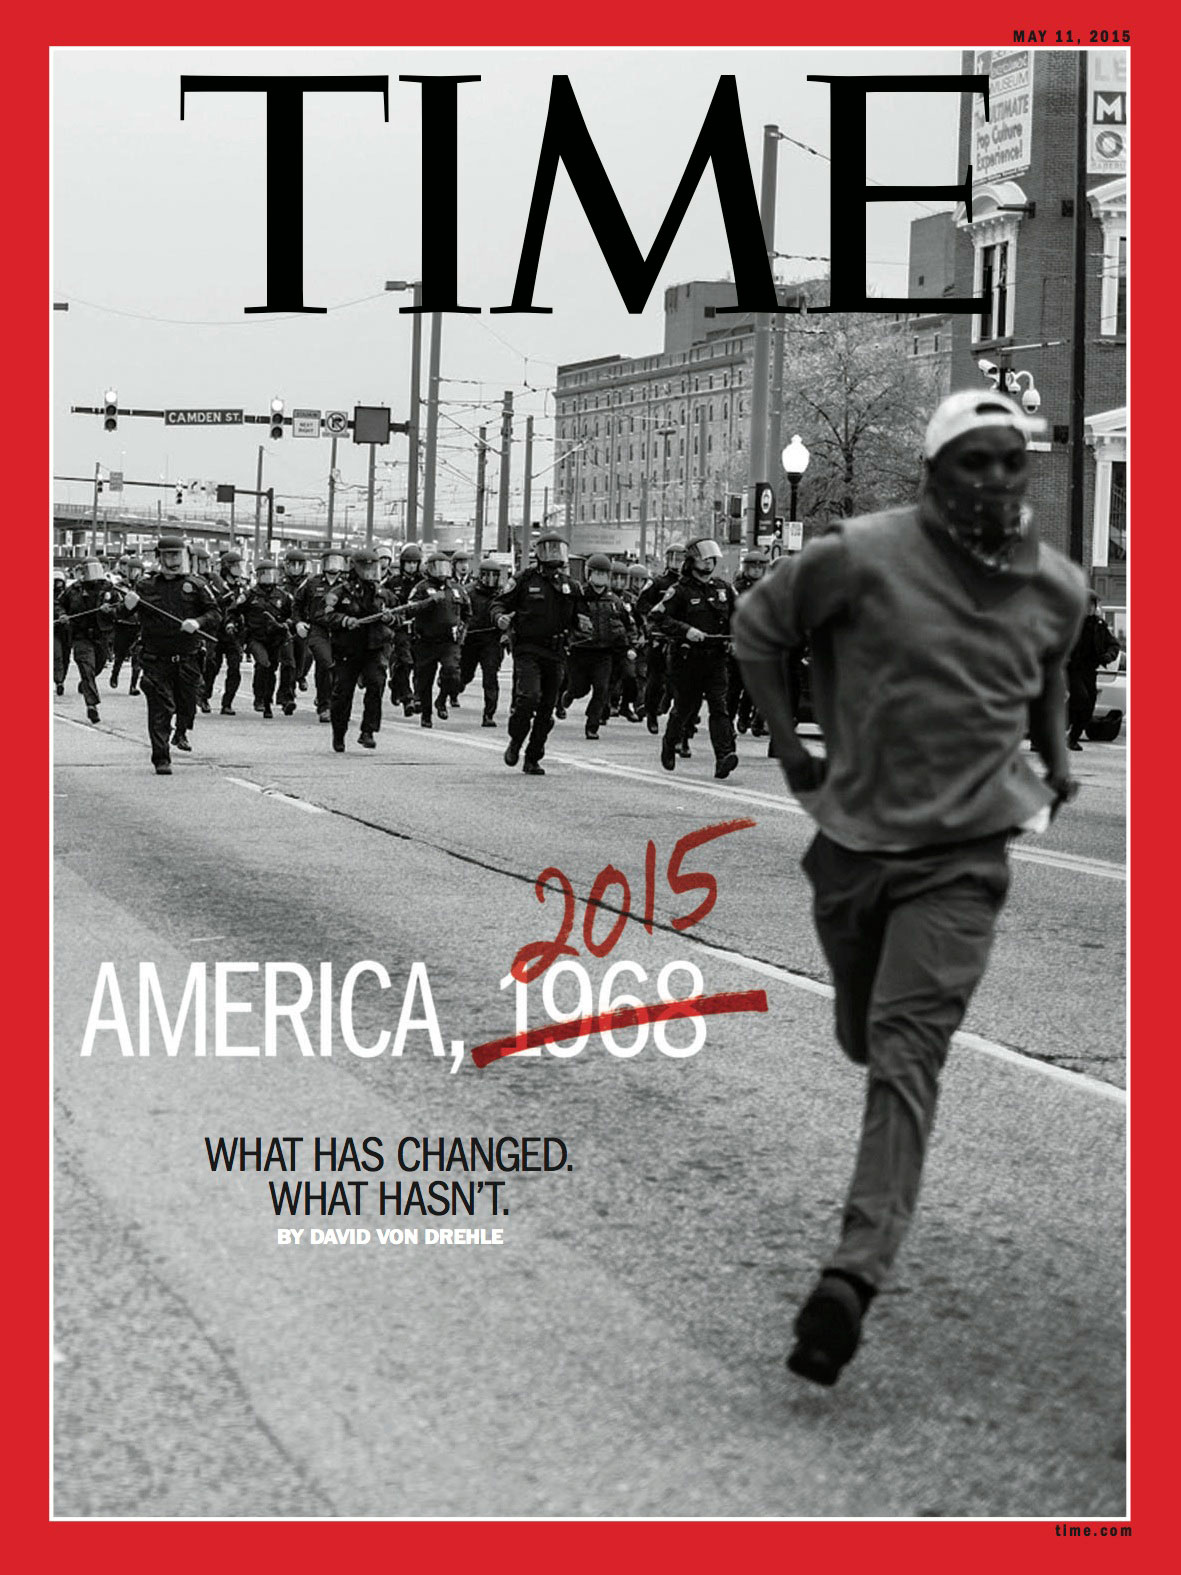 TIME, May 11, 2015. Photograph by Devin Allen.                                                              The cover of TIME was huge and life changing, it's still a dream to me. It was amazing not just for me, but for my city; showing us how even the little people can change the world. Now I can tell people dreams really do come true. The TIME cover has made me somewhat of a D-list celebrity. But the most important thing is that it has put me in a position to help my community. I have started my own photography outreach program working with the youth on Penn-North. I thought it was an OK picture but I did not know how powerful it was. I never thought it would become an iconic image.                                                              —Devin Allen, Photographer